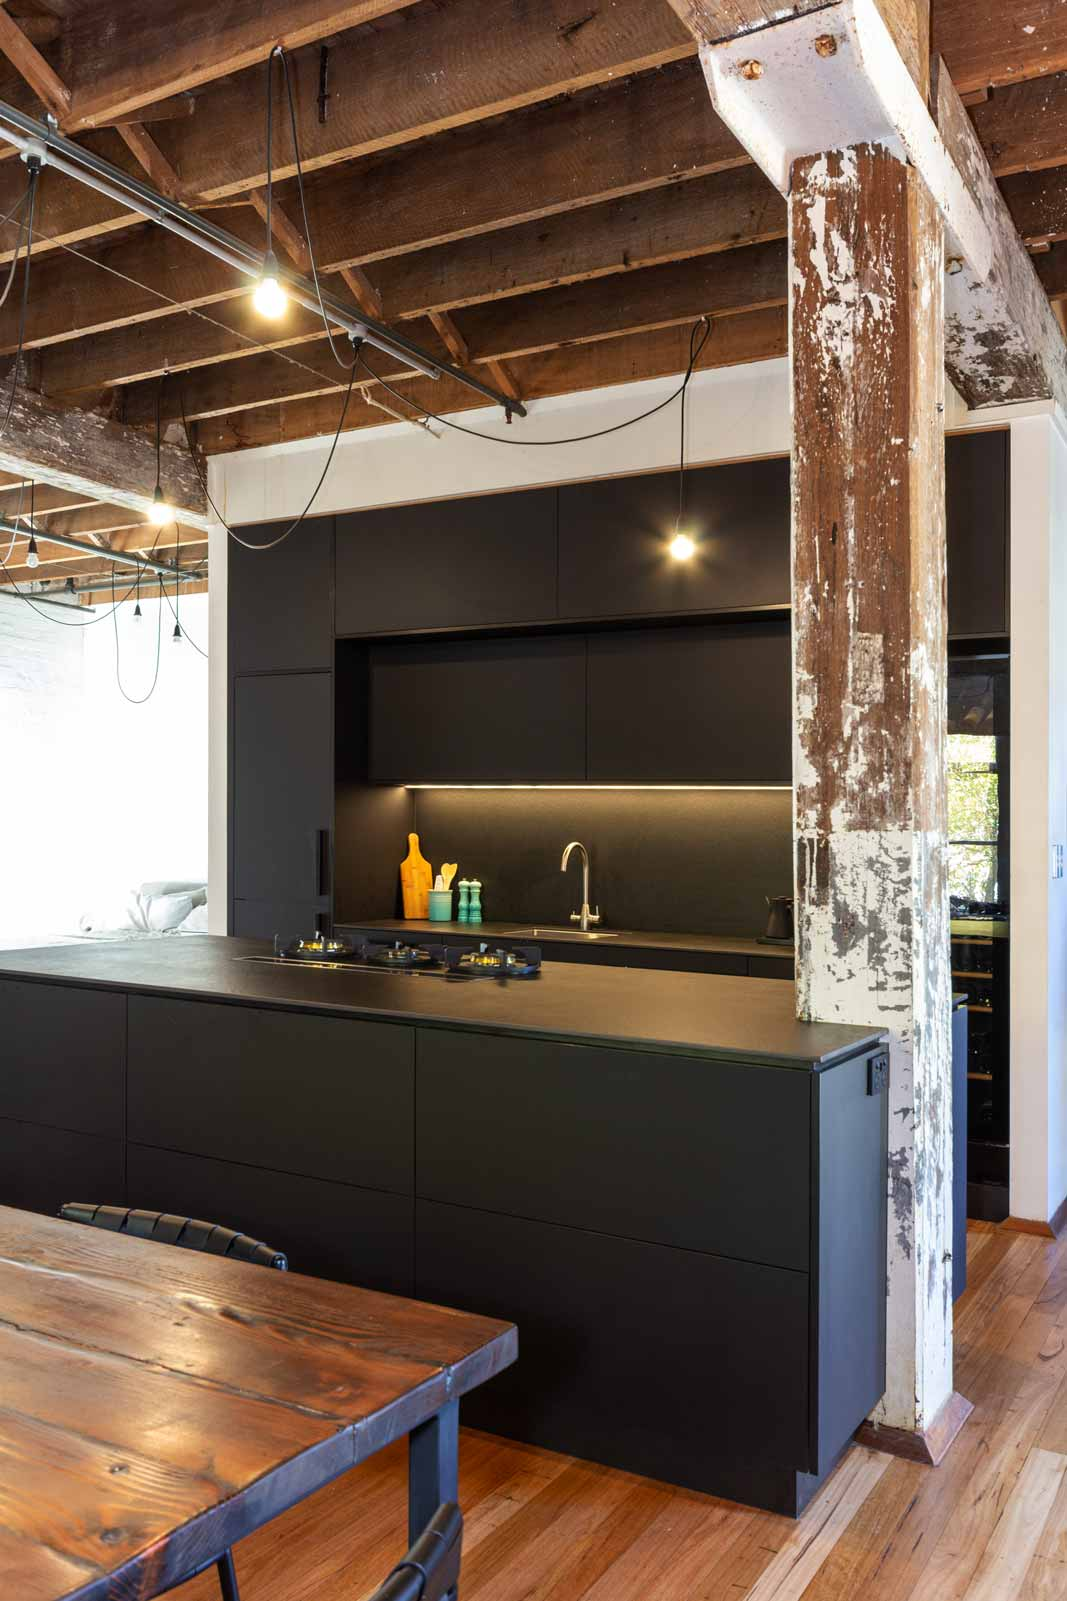 Matt black luxury industrial kitchen design featuring Bosch oven, Vintec wine fridge, Franke sink, Pitt gas burners, Elica downdraft and Neolith benchtop and splashback